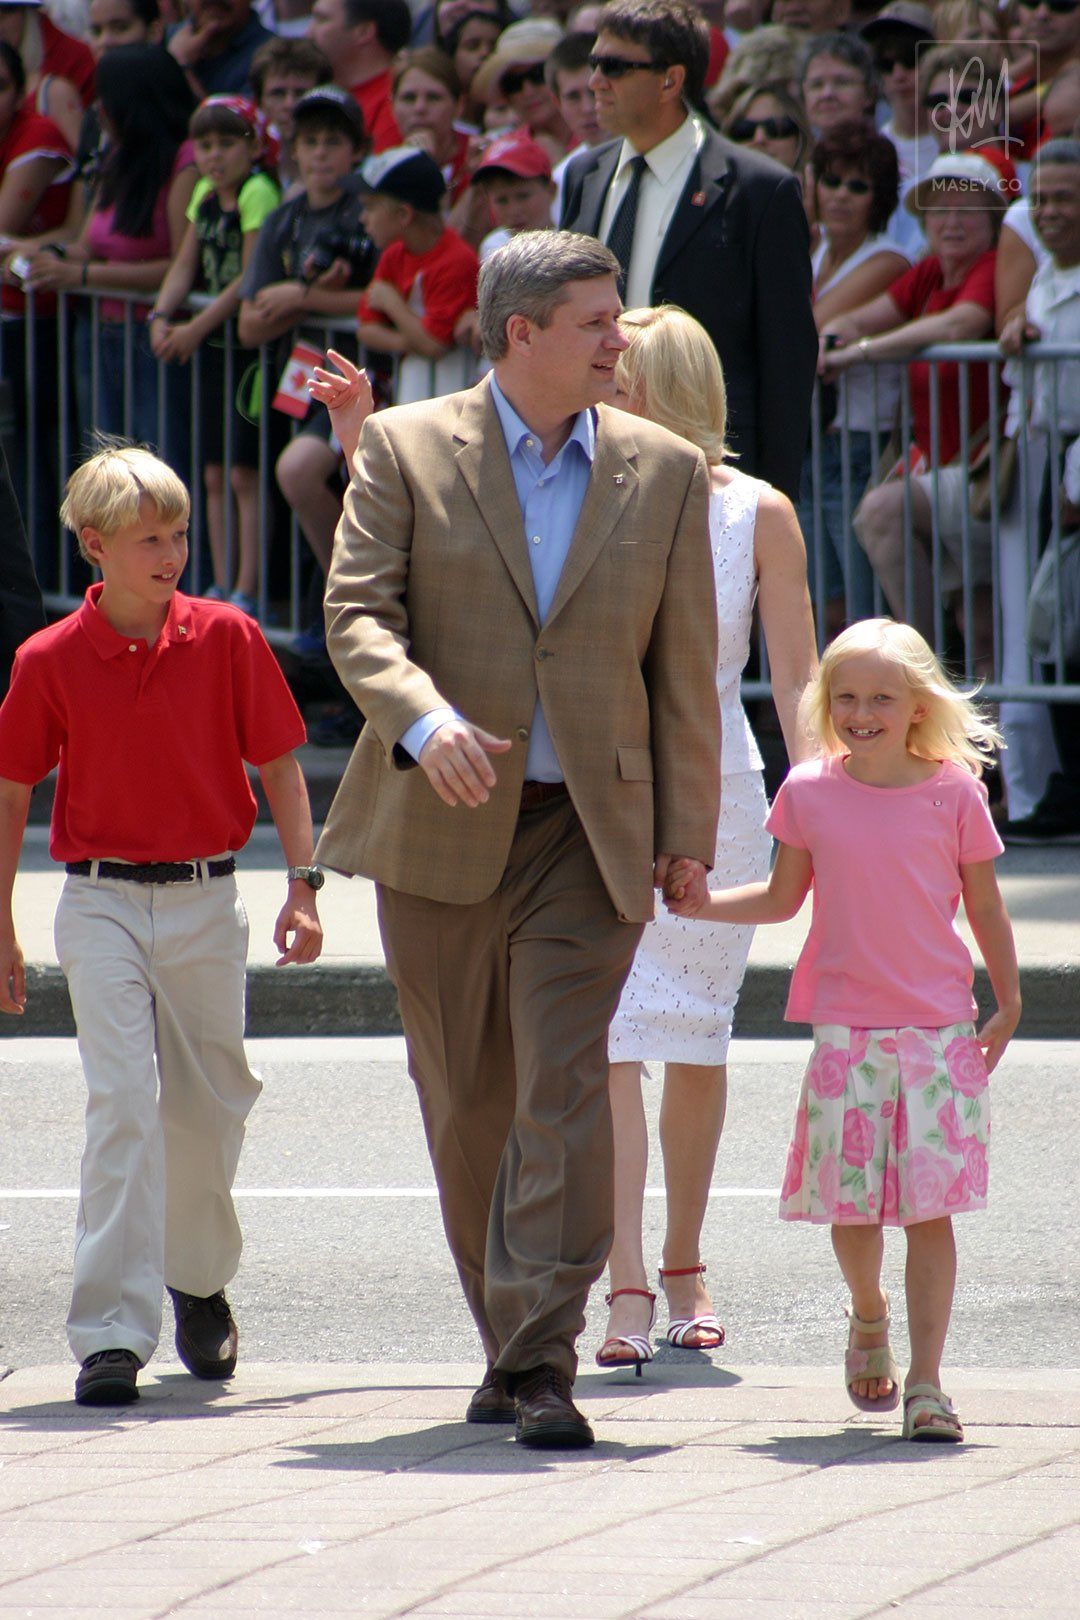 Prime Minister Harper and his family stepping out